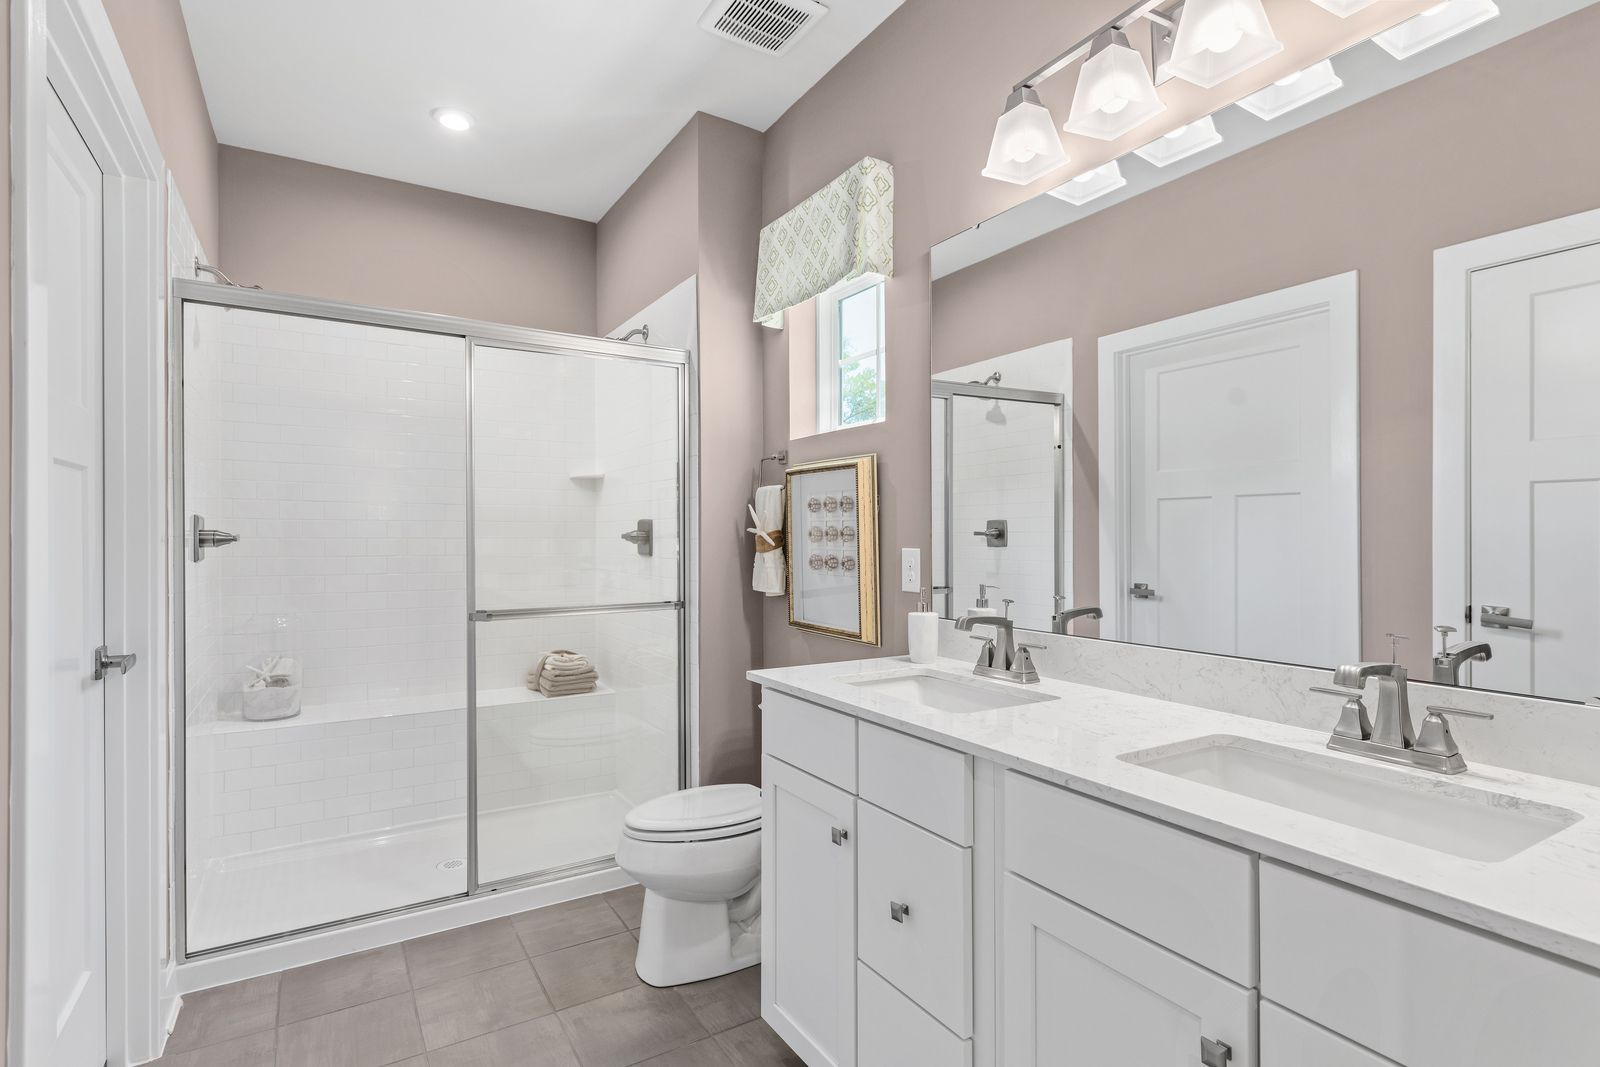 Bathroom featured in the Alberti 2 Story By Ryan Homes in Chicago, IL